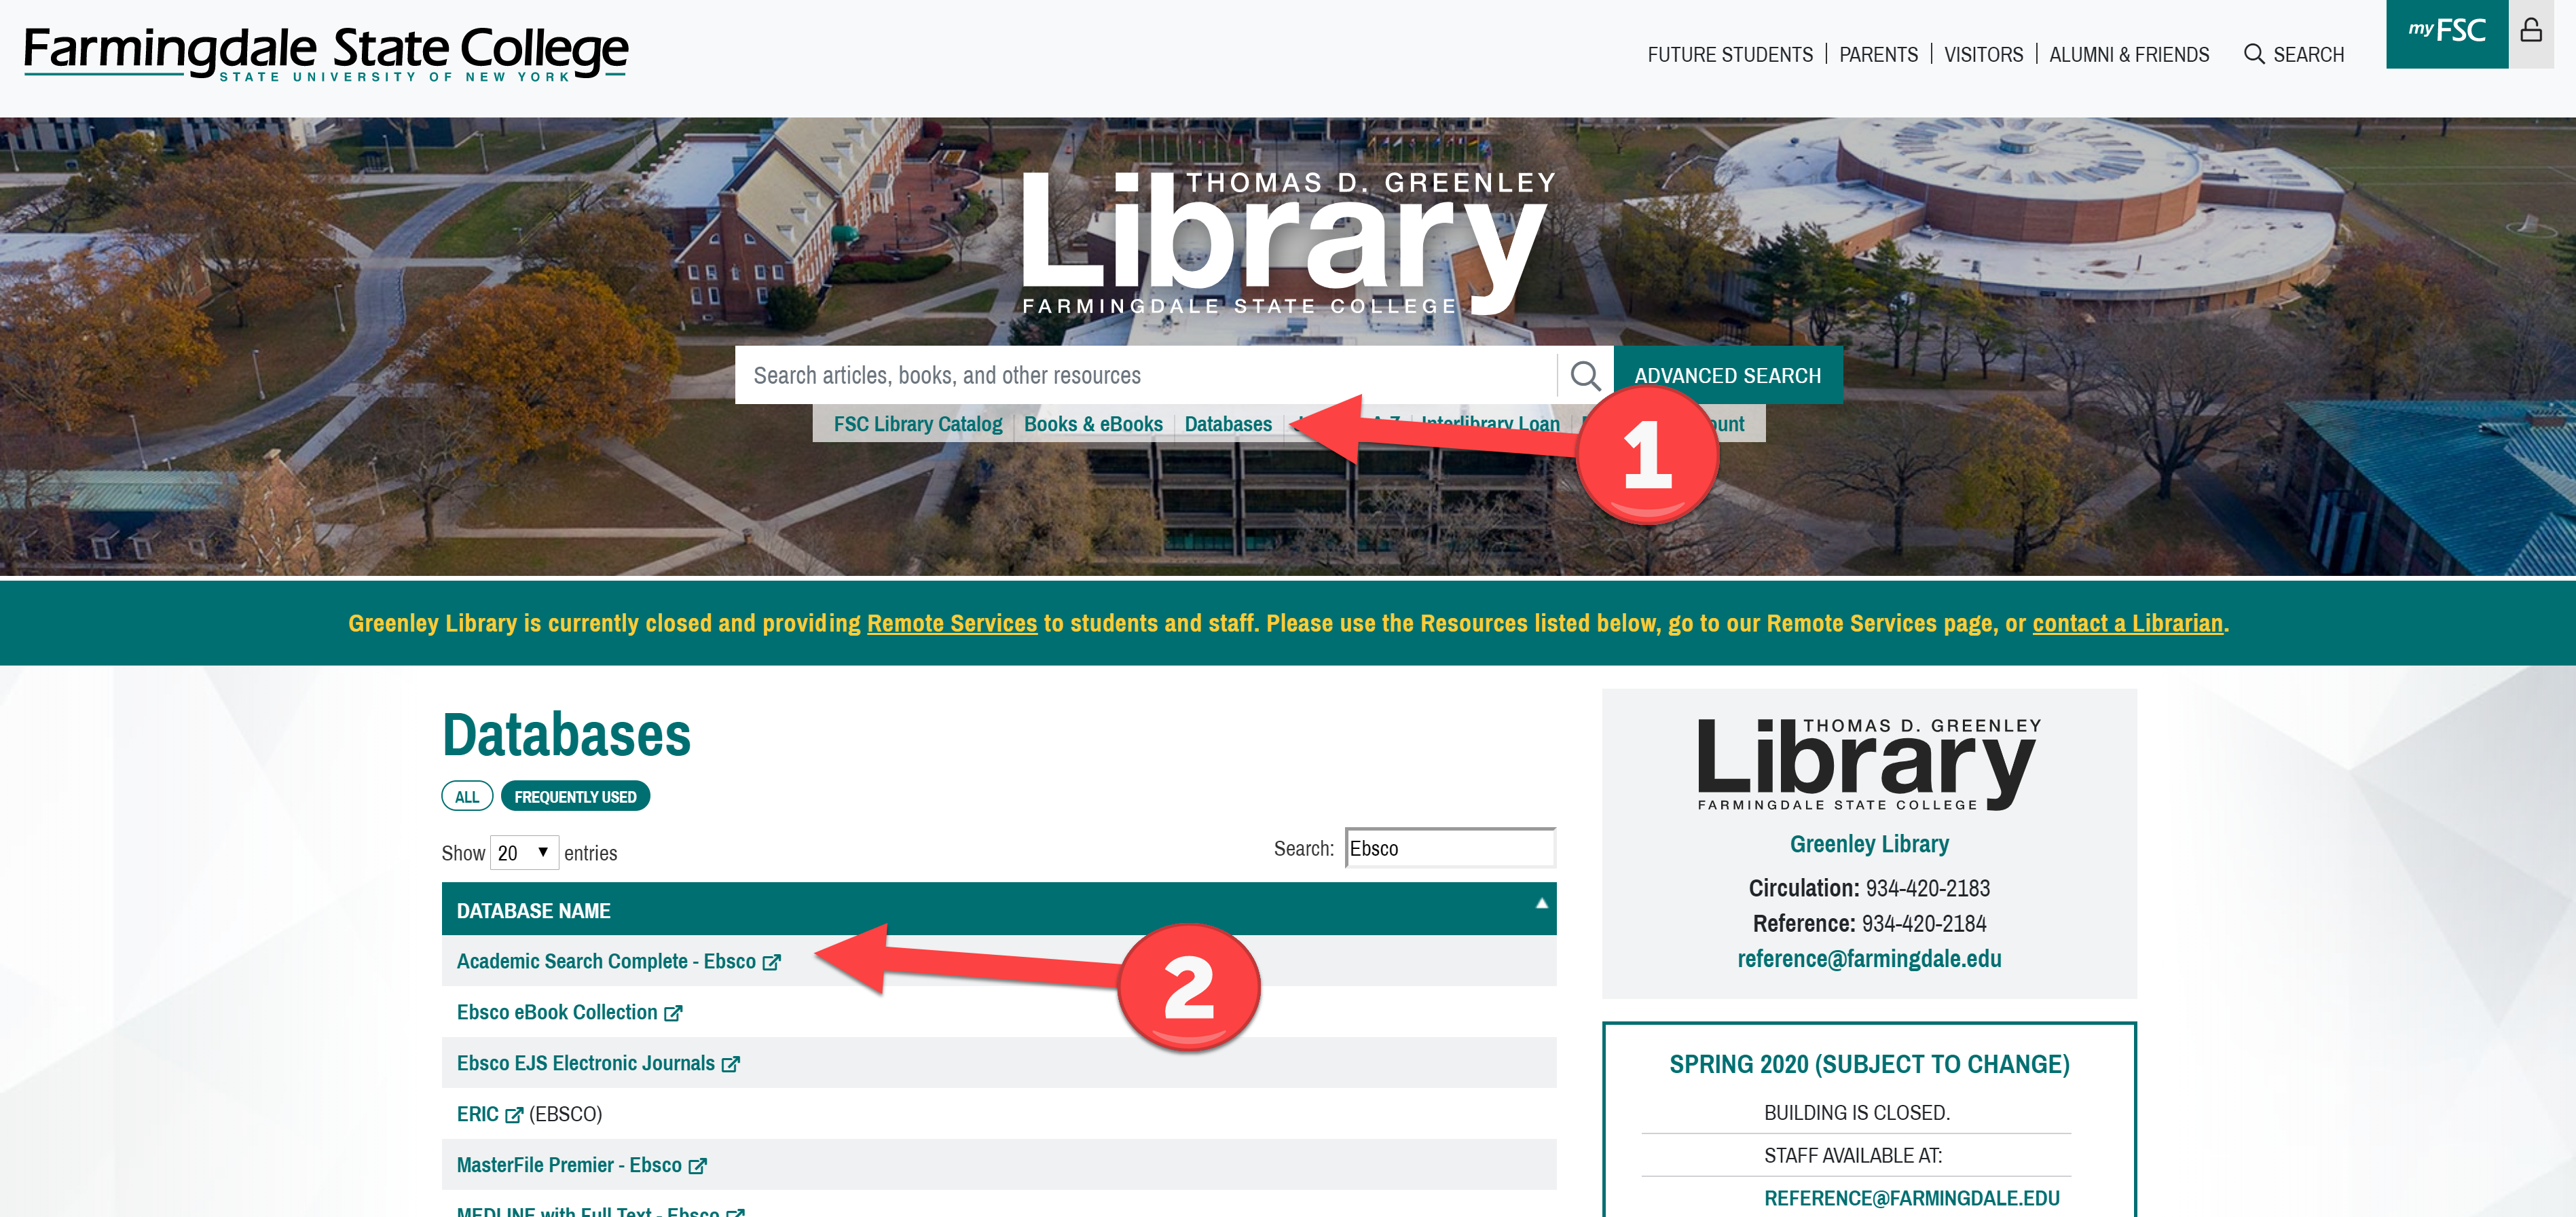 How to get to the database from the library homepage.